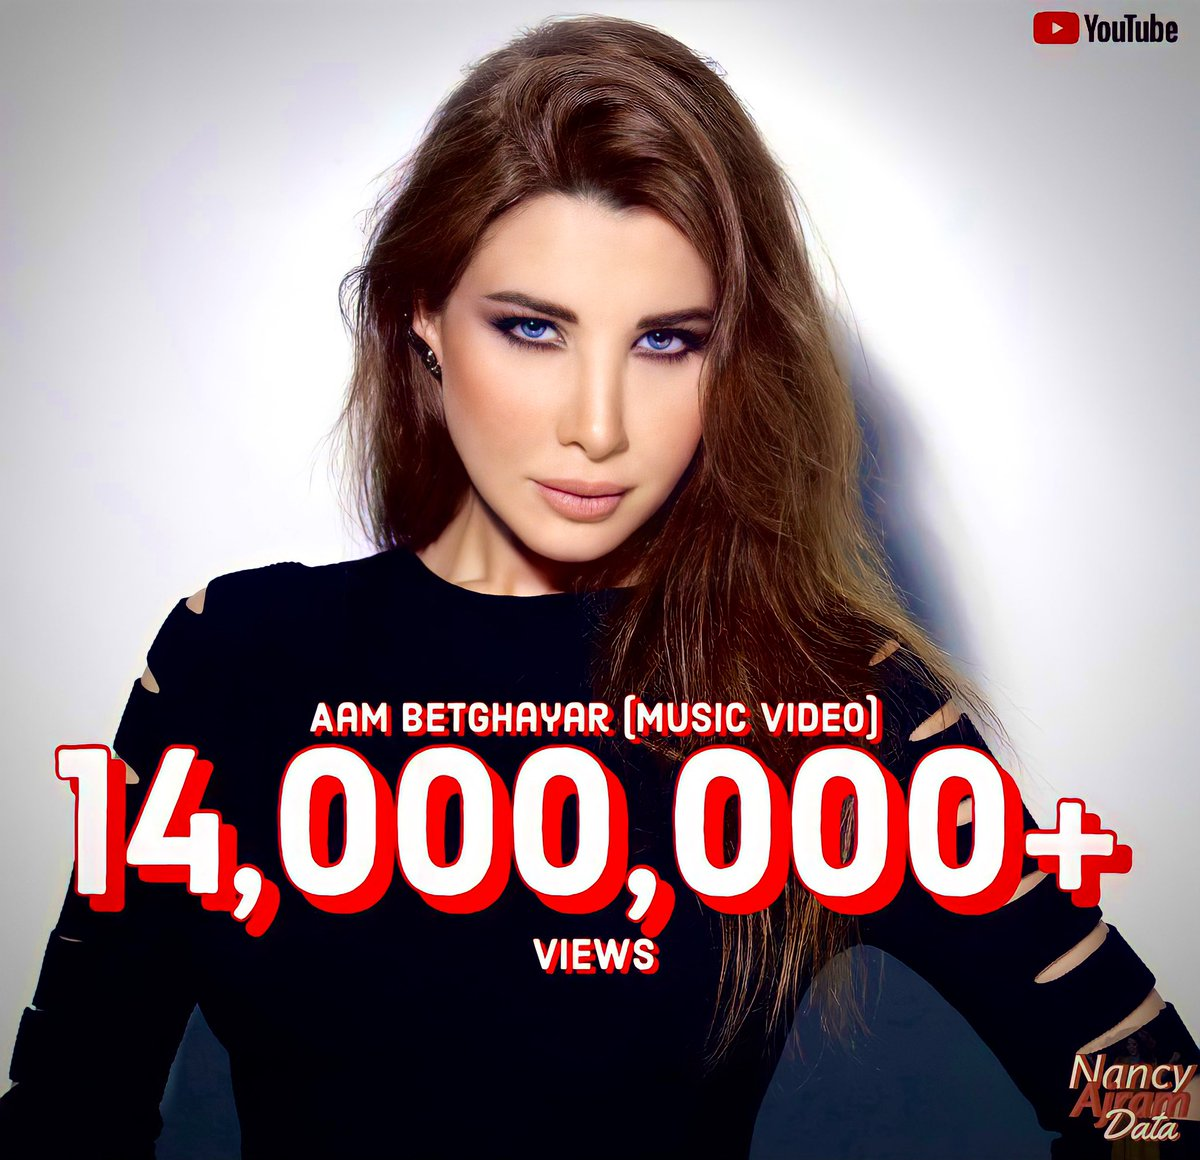 """.@NancyAjram's music video for her song """"Aam Betghayar"""" has now surpassed 14 MILLION views on @YouTube.  The song and video were created for the Arabic TV Series """"Julia.""""#نانسي_عجرم"""